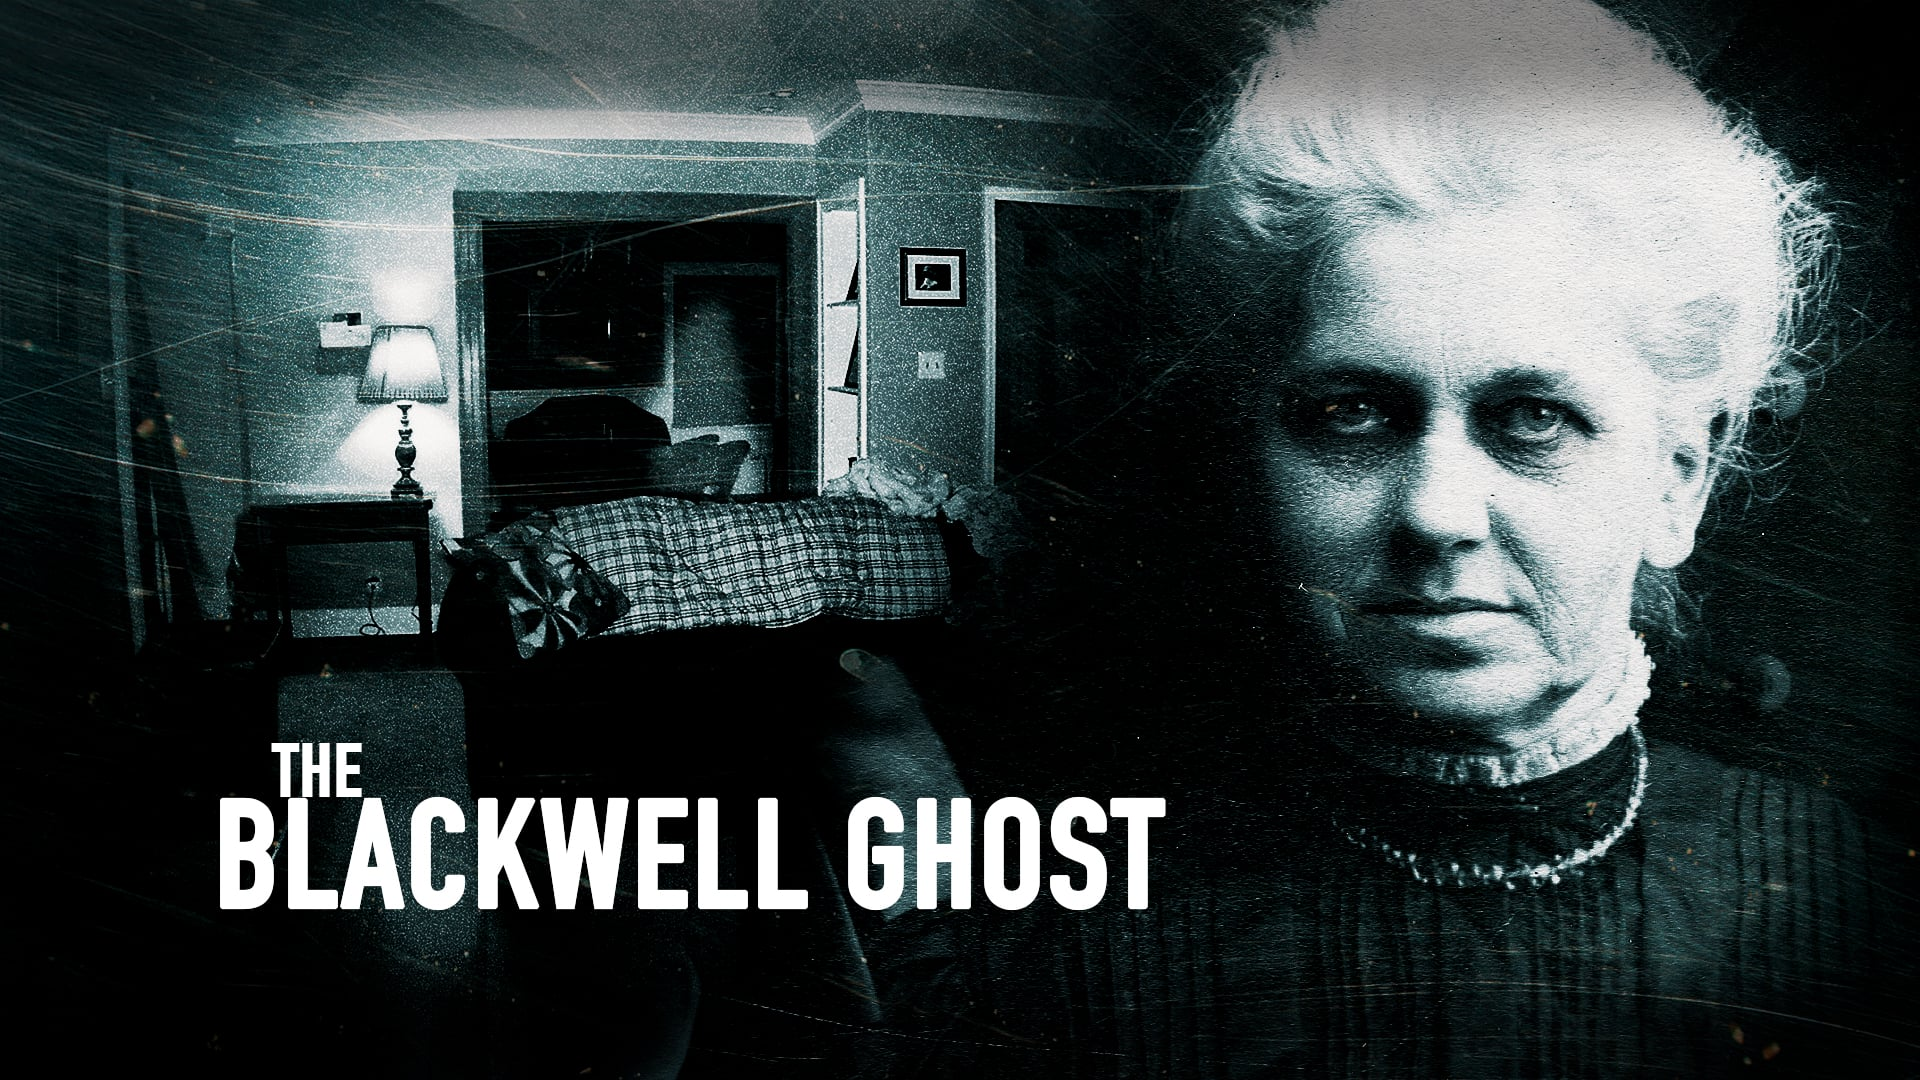 The Blackwell Ghost (PART 1) TRAILER